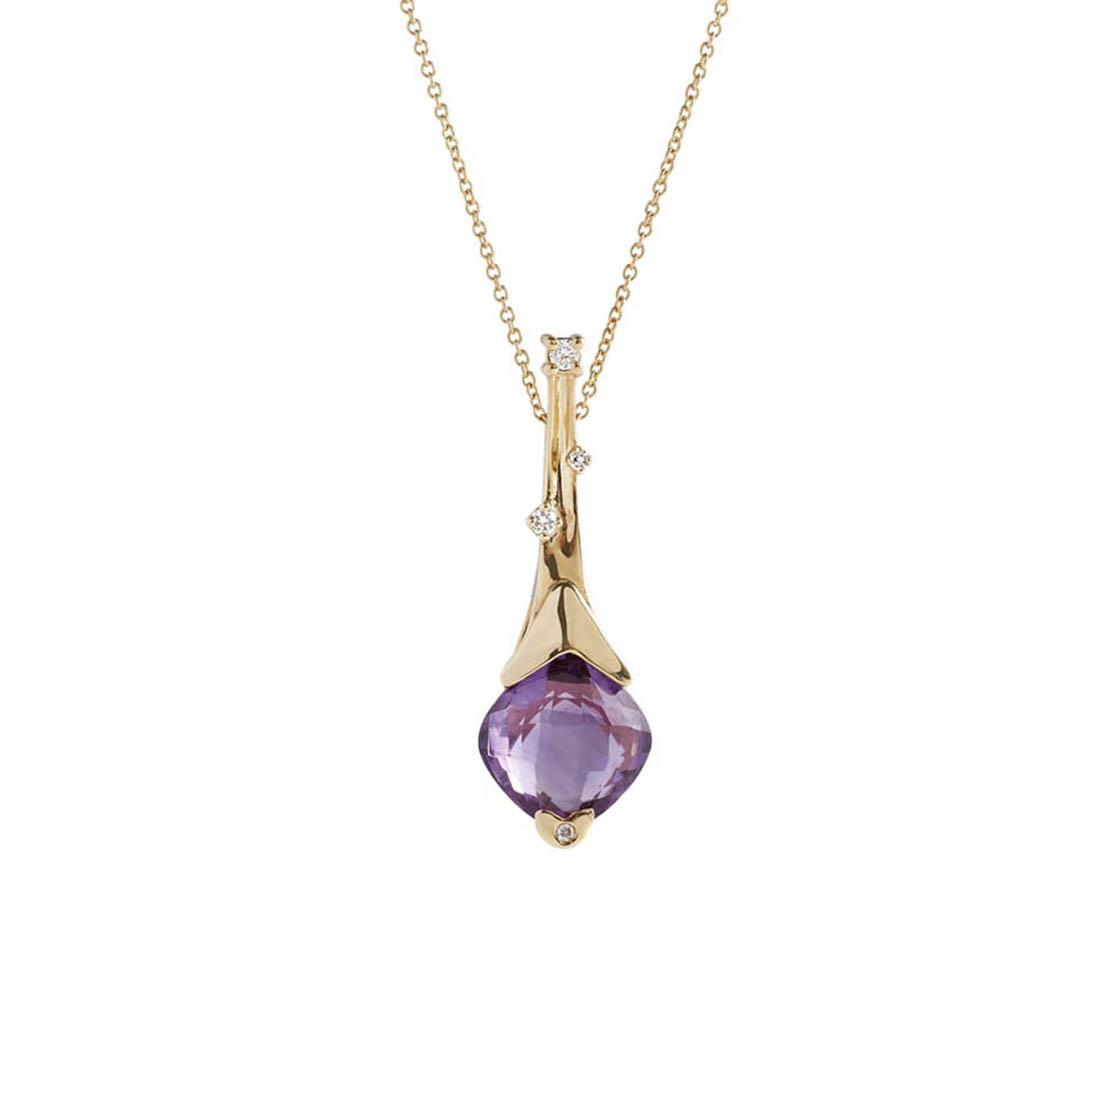 Necklace with amethyst and diamonds - ALFIERI & ST. JOHN